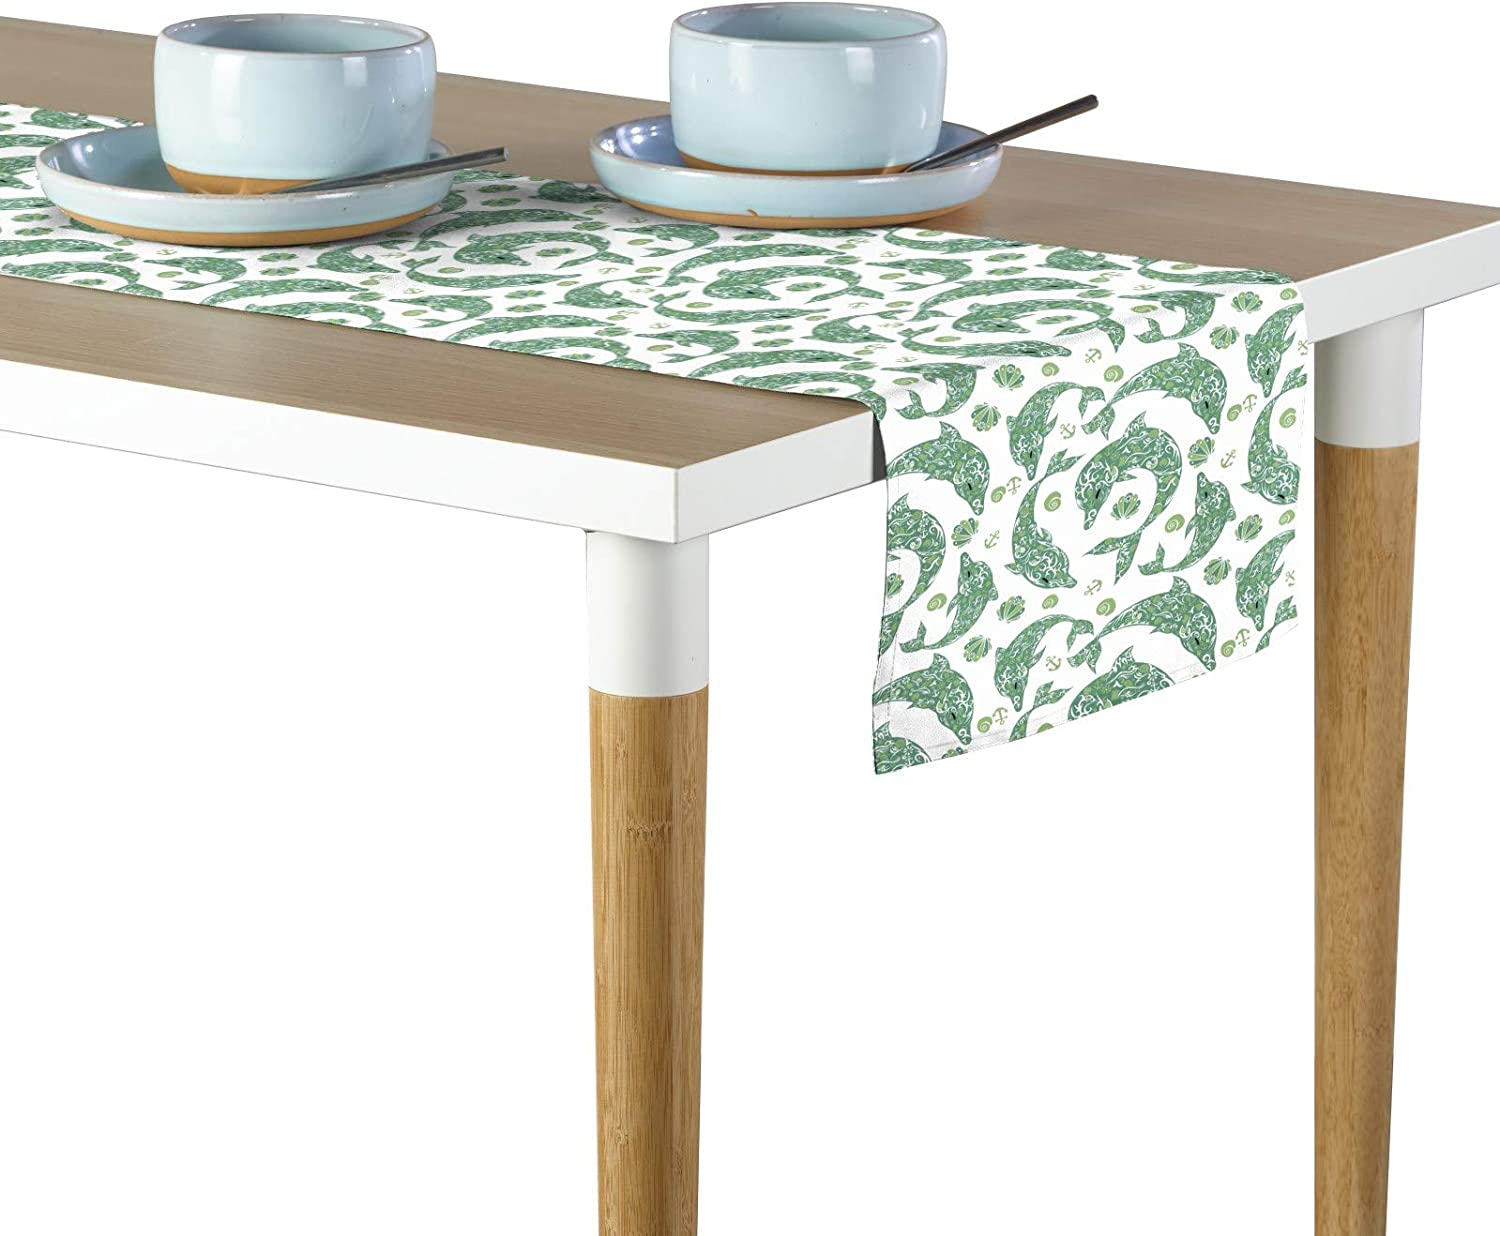 Fabric Textile Products Designer Dolphins Table Runner 12 X72 Home Kitchen